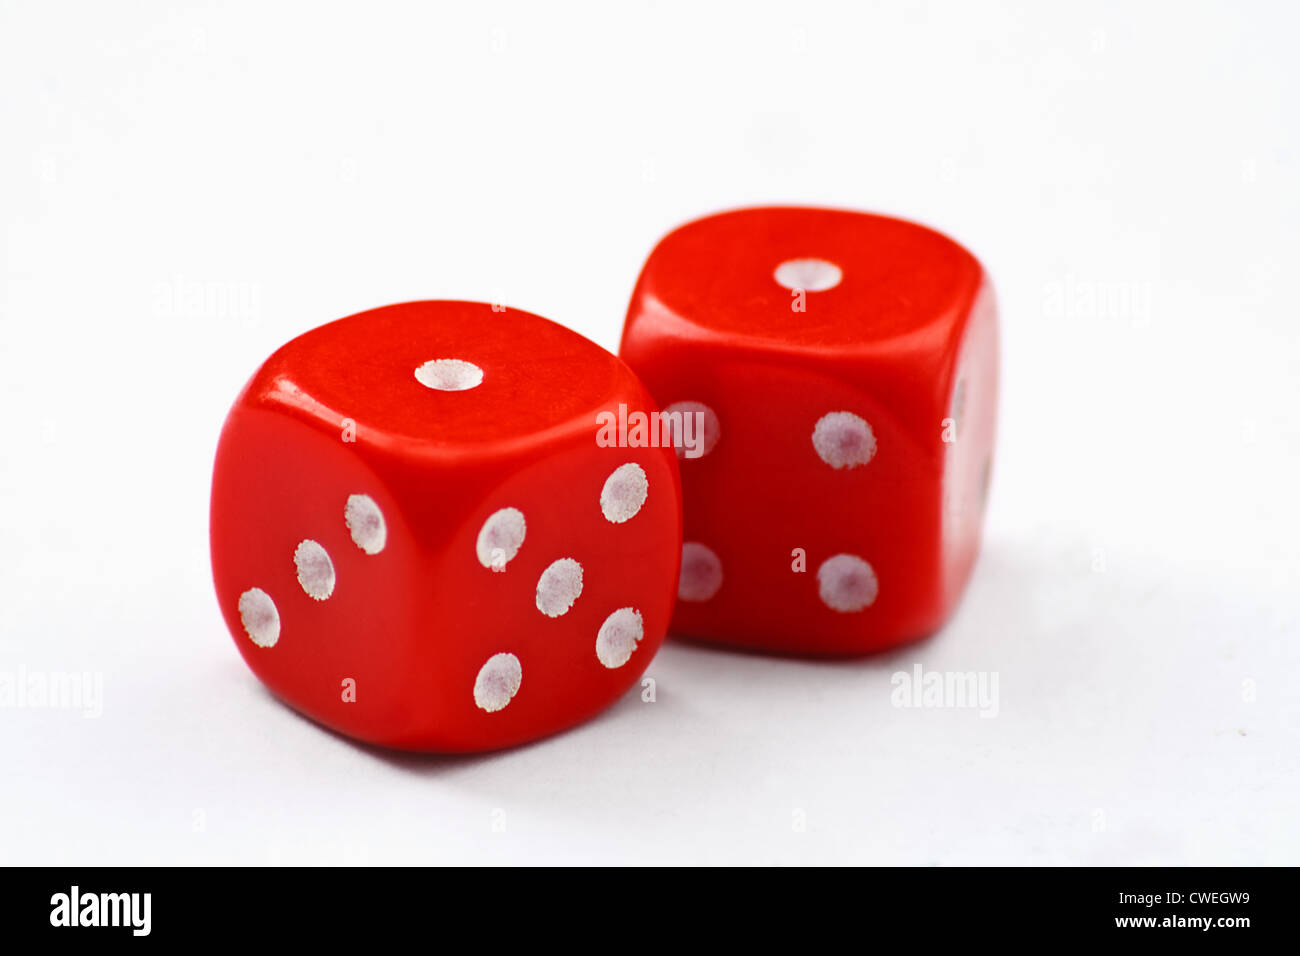 Pair of red dice thrown to show snake eyes, isolated on a white background - Stock Image